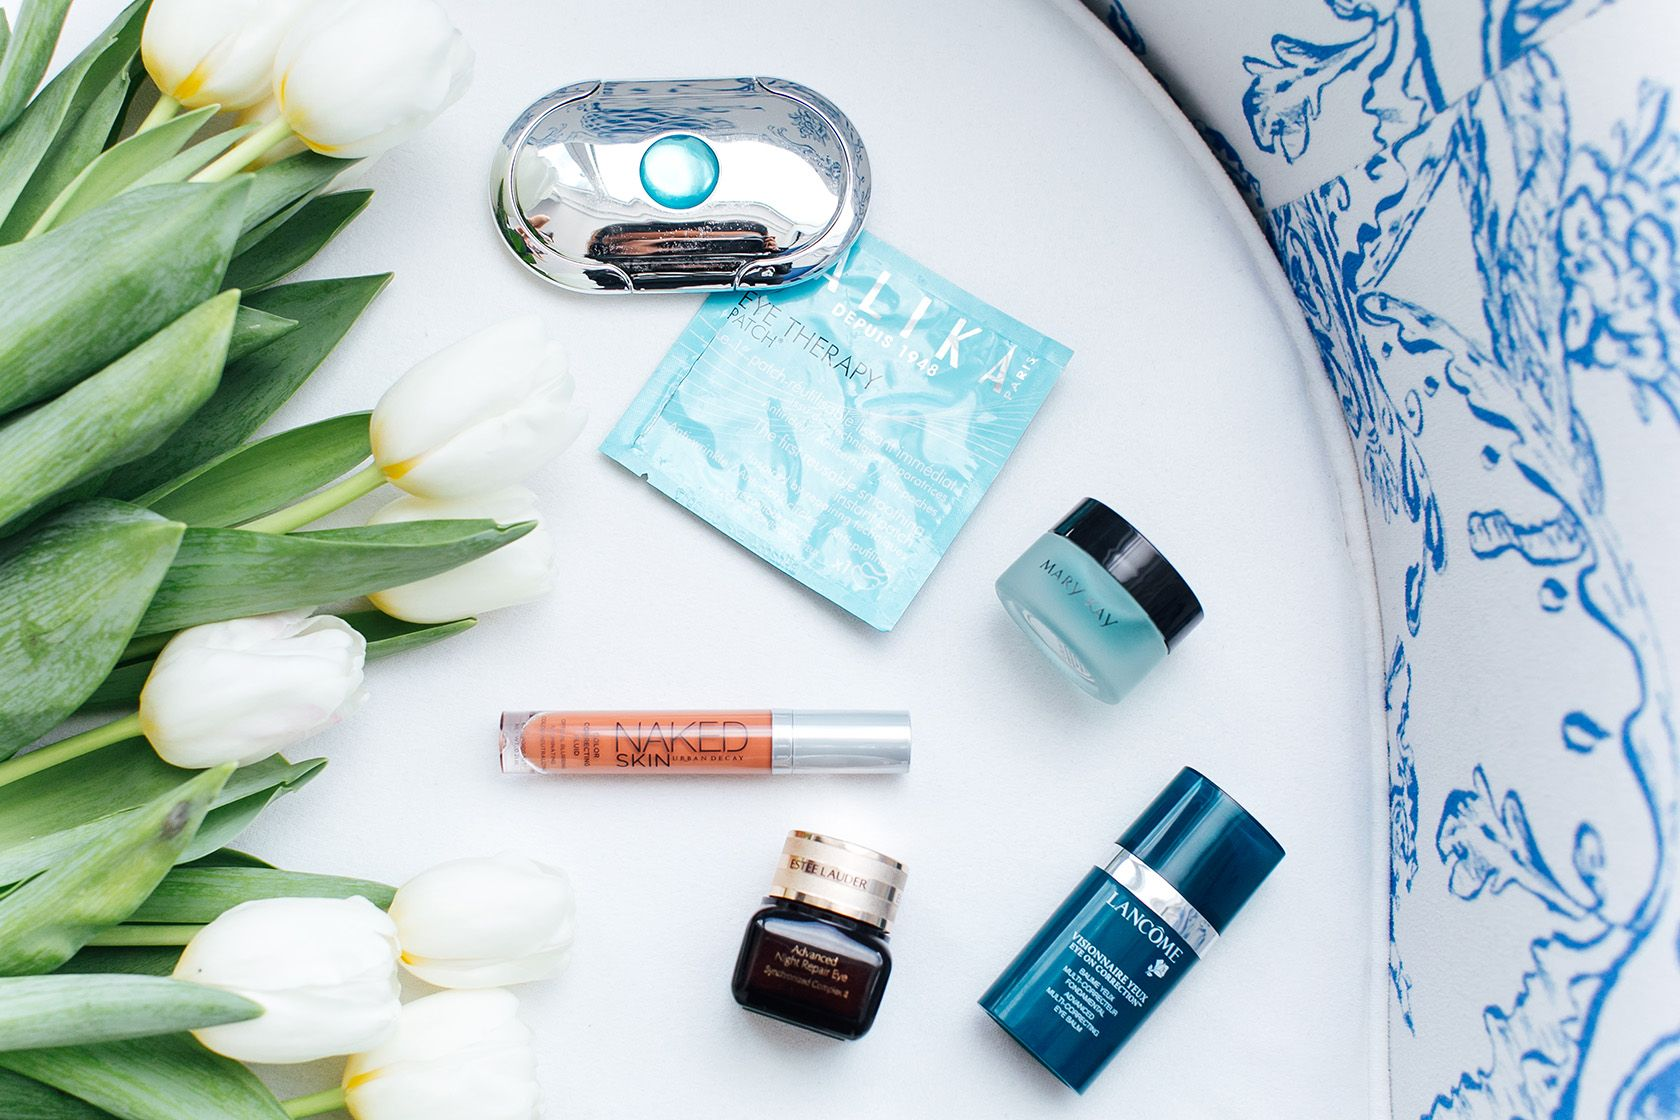 Sydne Style - Los Angeles fashion blogger Sydne Summer talks about Beauty Products that Get Rid of Dark Under Eye Circles.